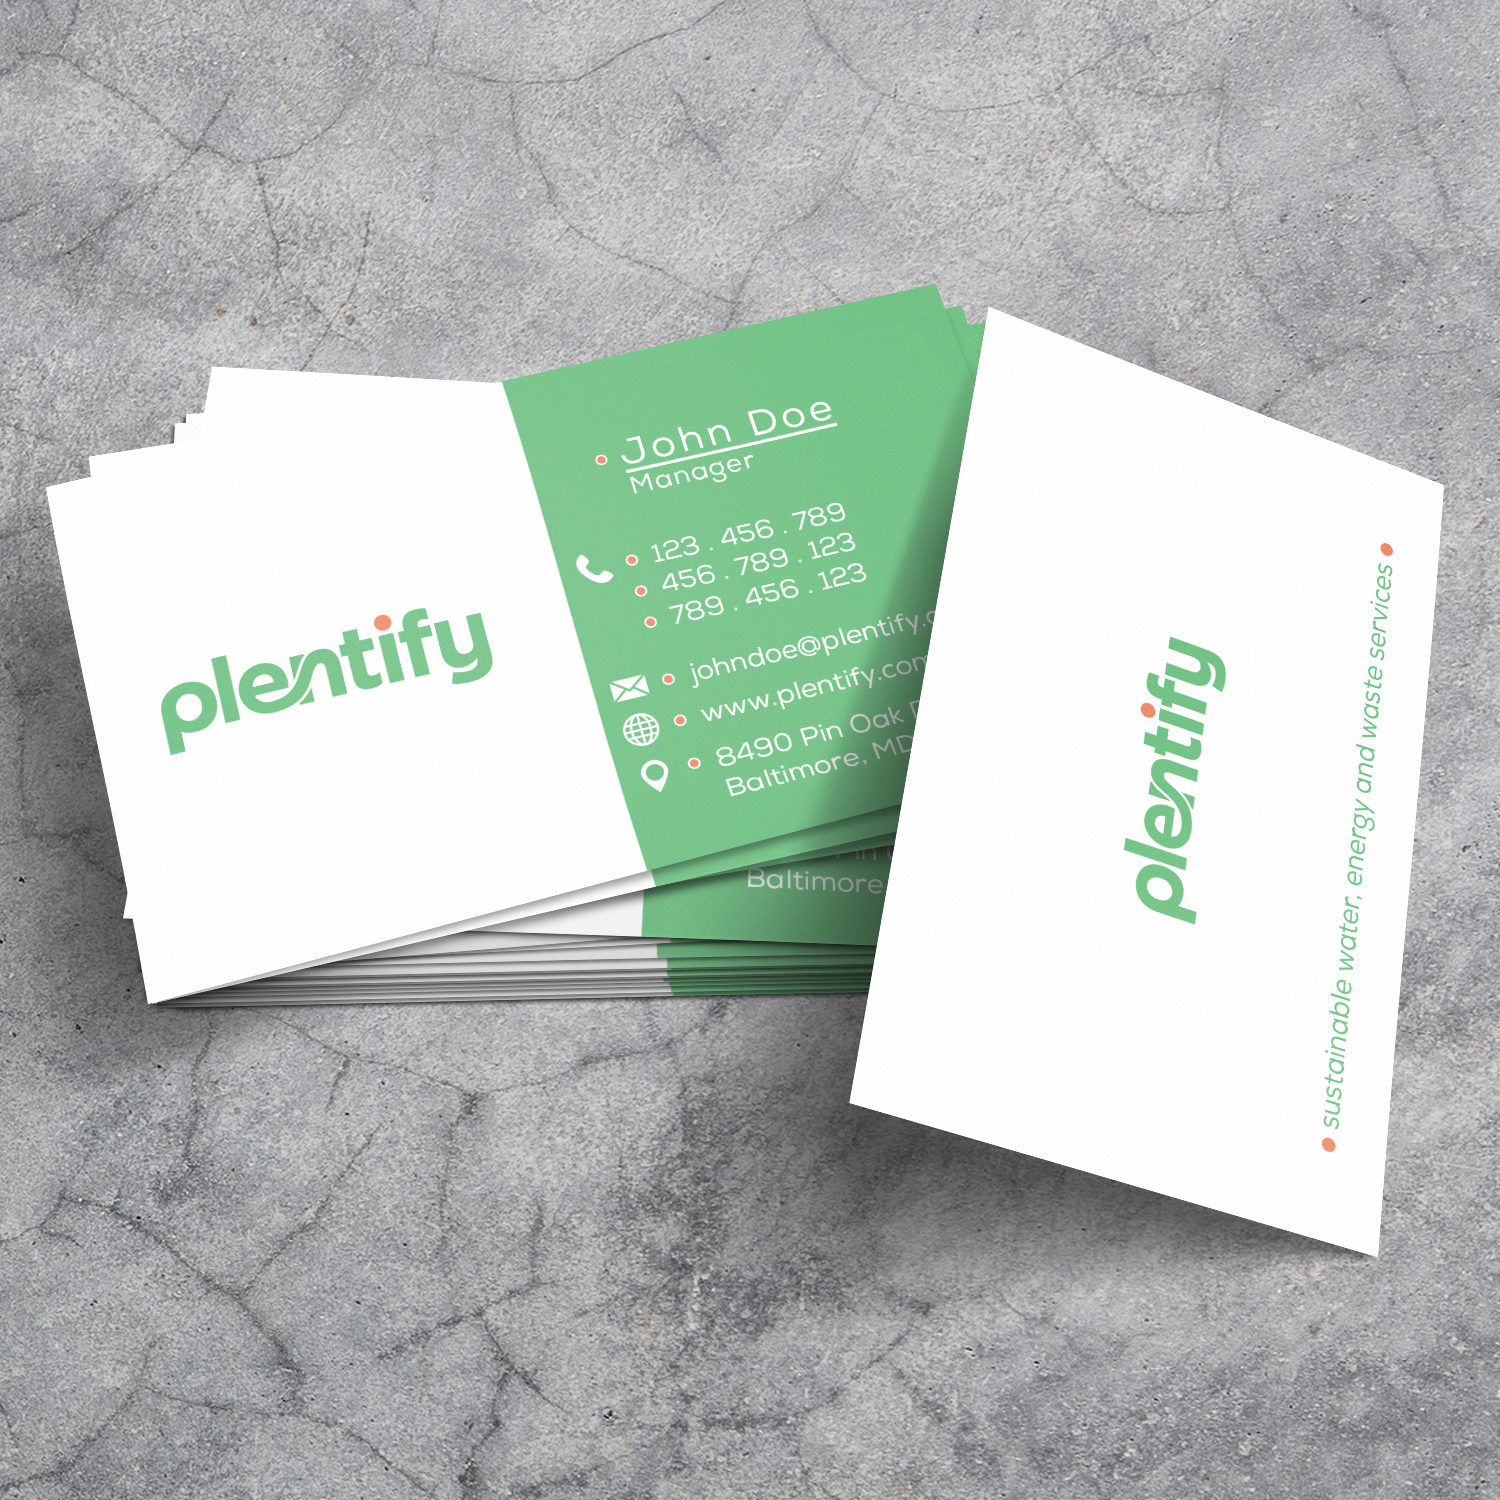 Modern, Professional, Utility Business Card Design for Plentify by ...